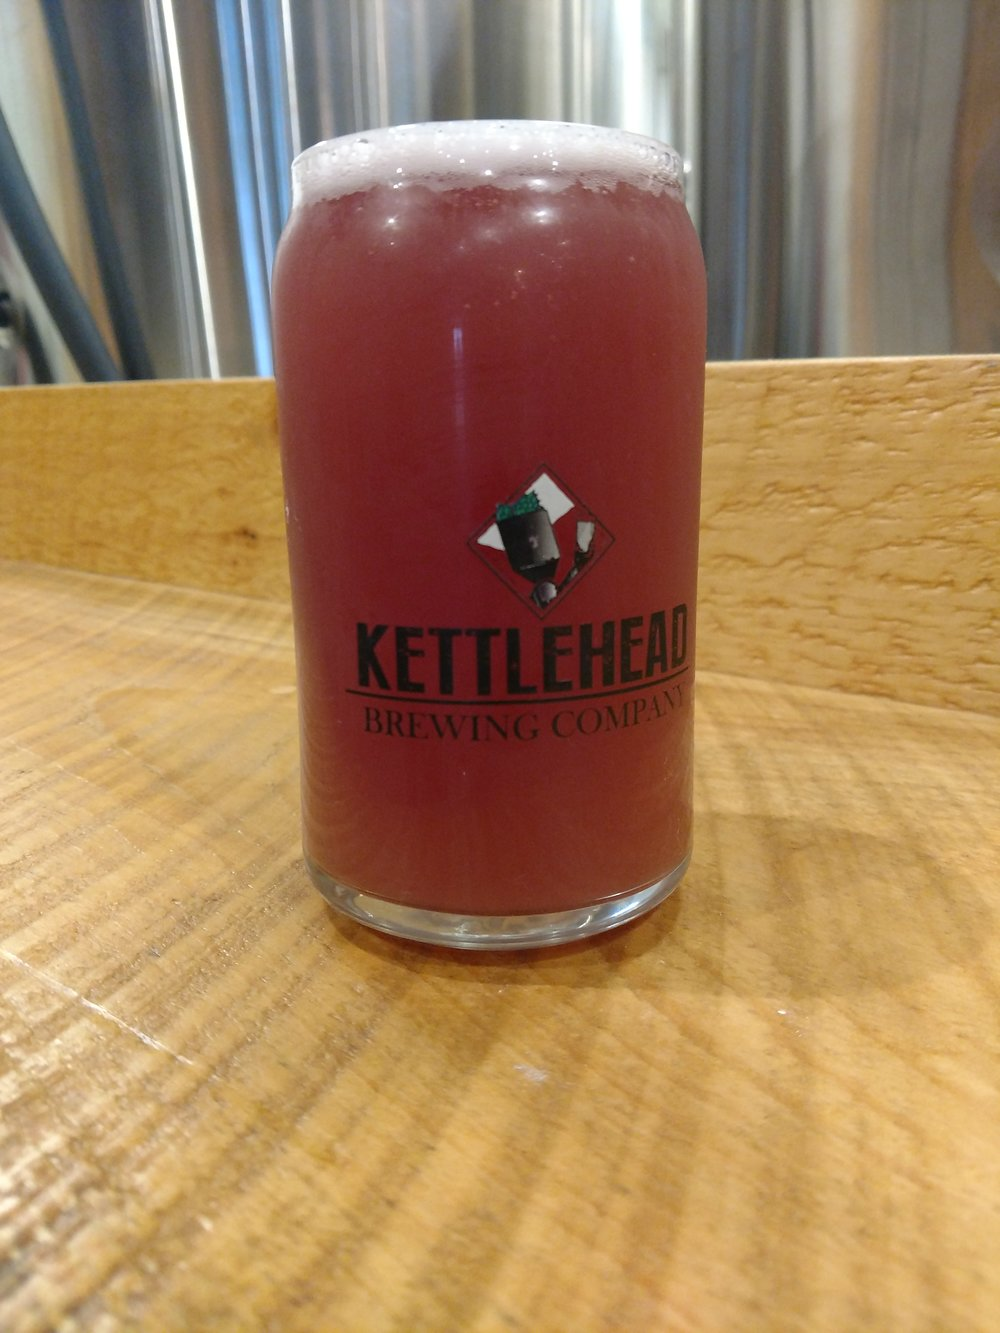 LOCAL BLUEPale Wheat Ale5% ABV - Our blueberry ale. A glowing pinkish blue color, made with fresh blueberries picked at a local farm. We add lactose to this beer to help combat the sourness of the blueberries